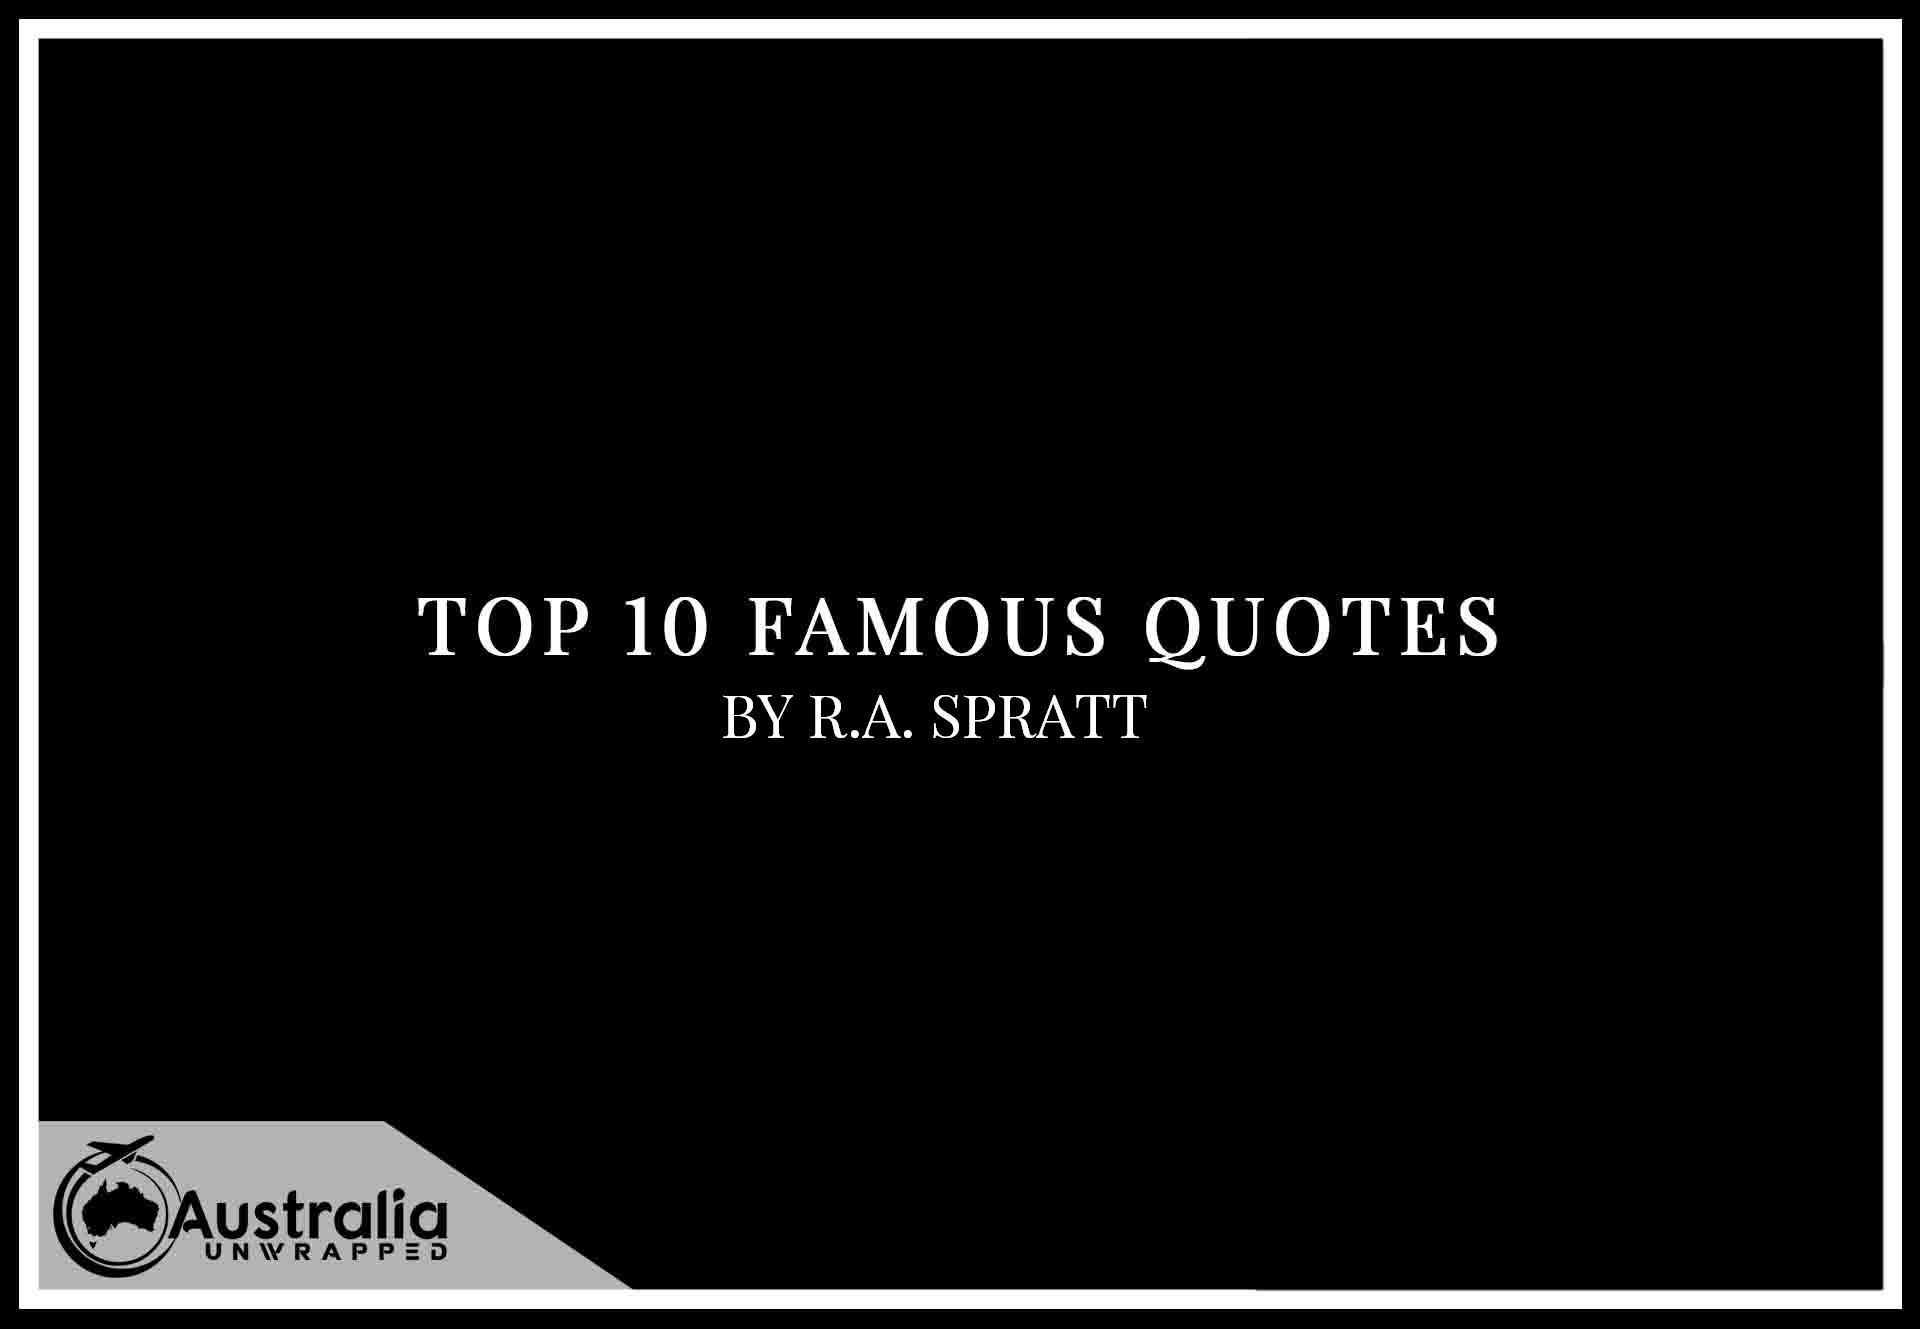 Top 10 Famous Quotes by Author R. A. Spratt